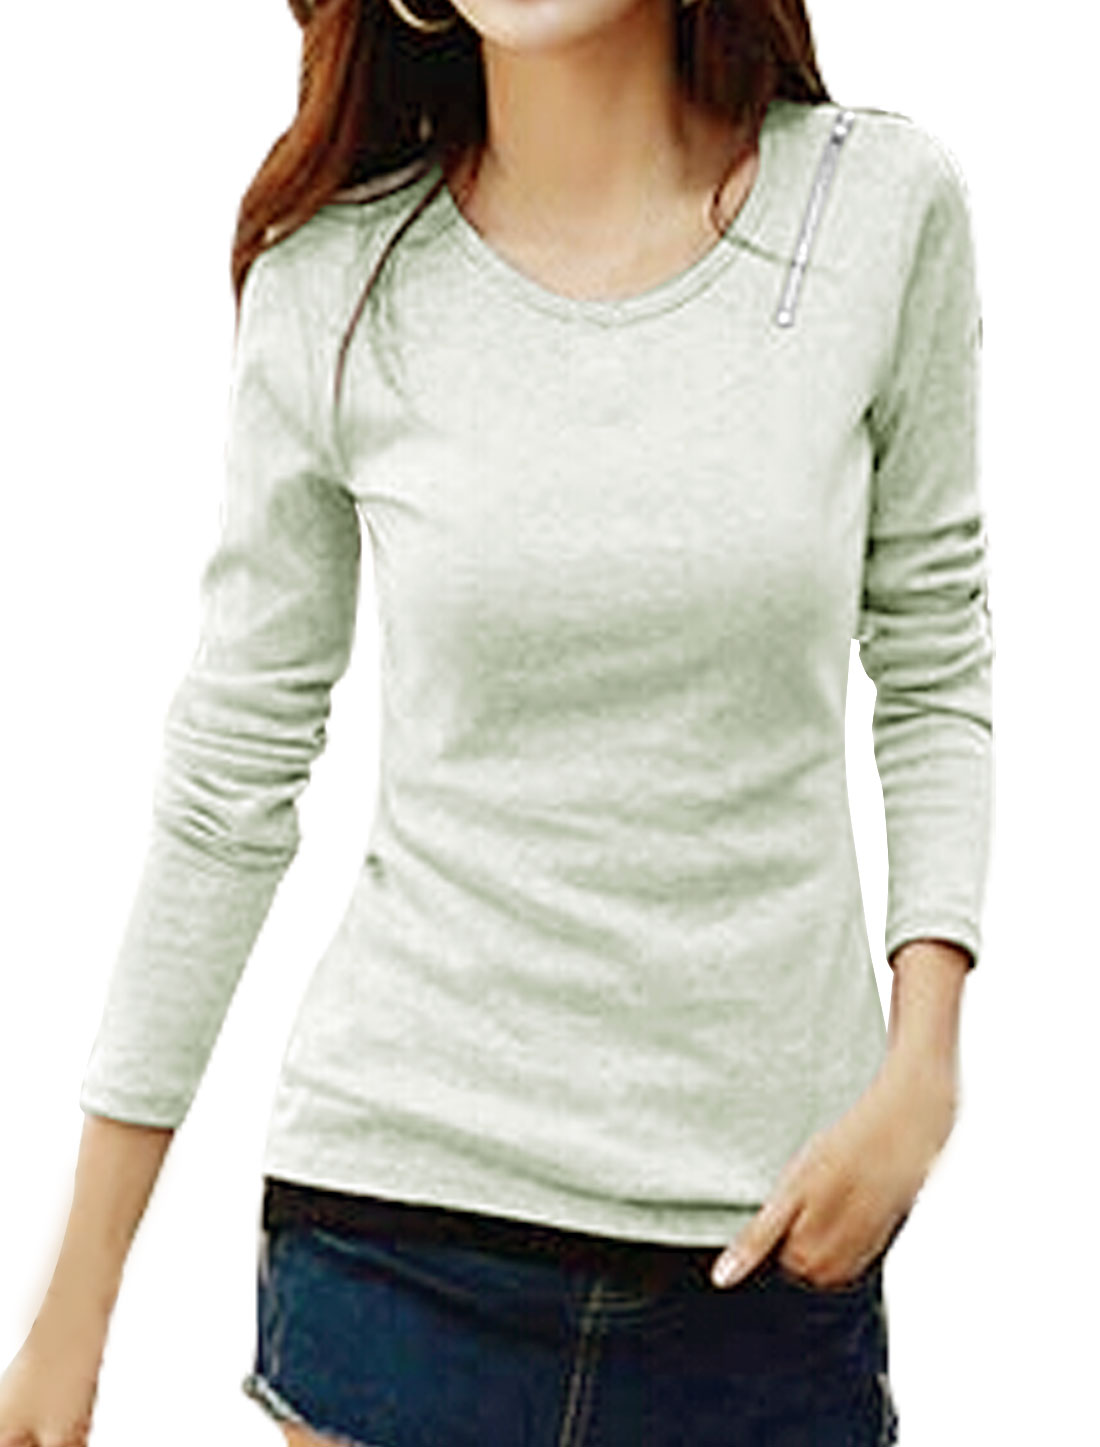 Women Zipper Shoulder Long Sleeves Slim Fit Tee Shirt Gray XS